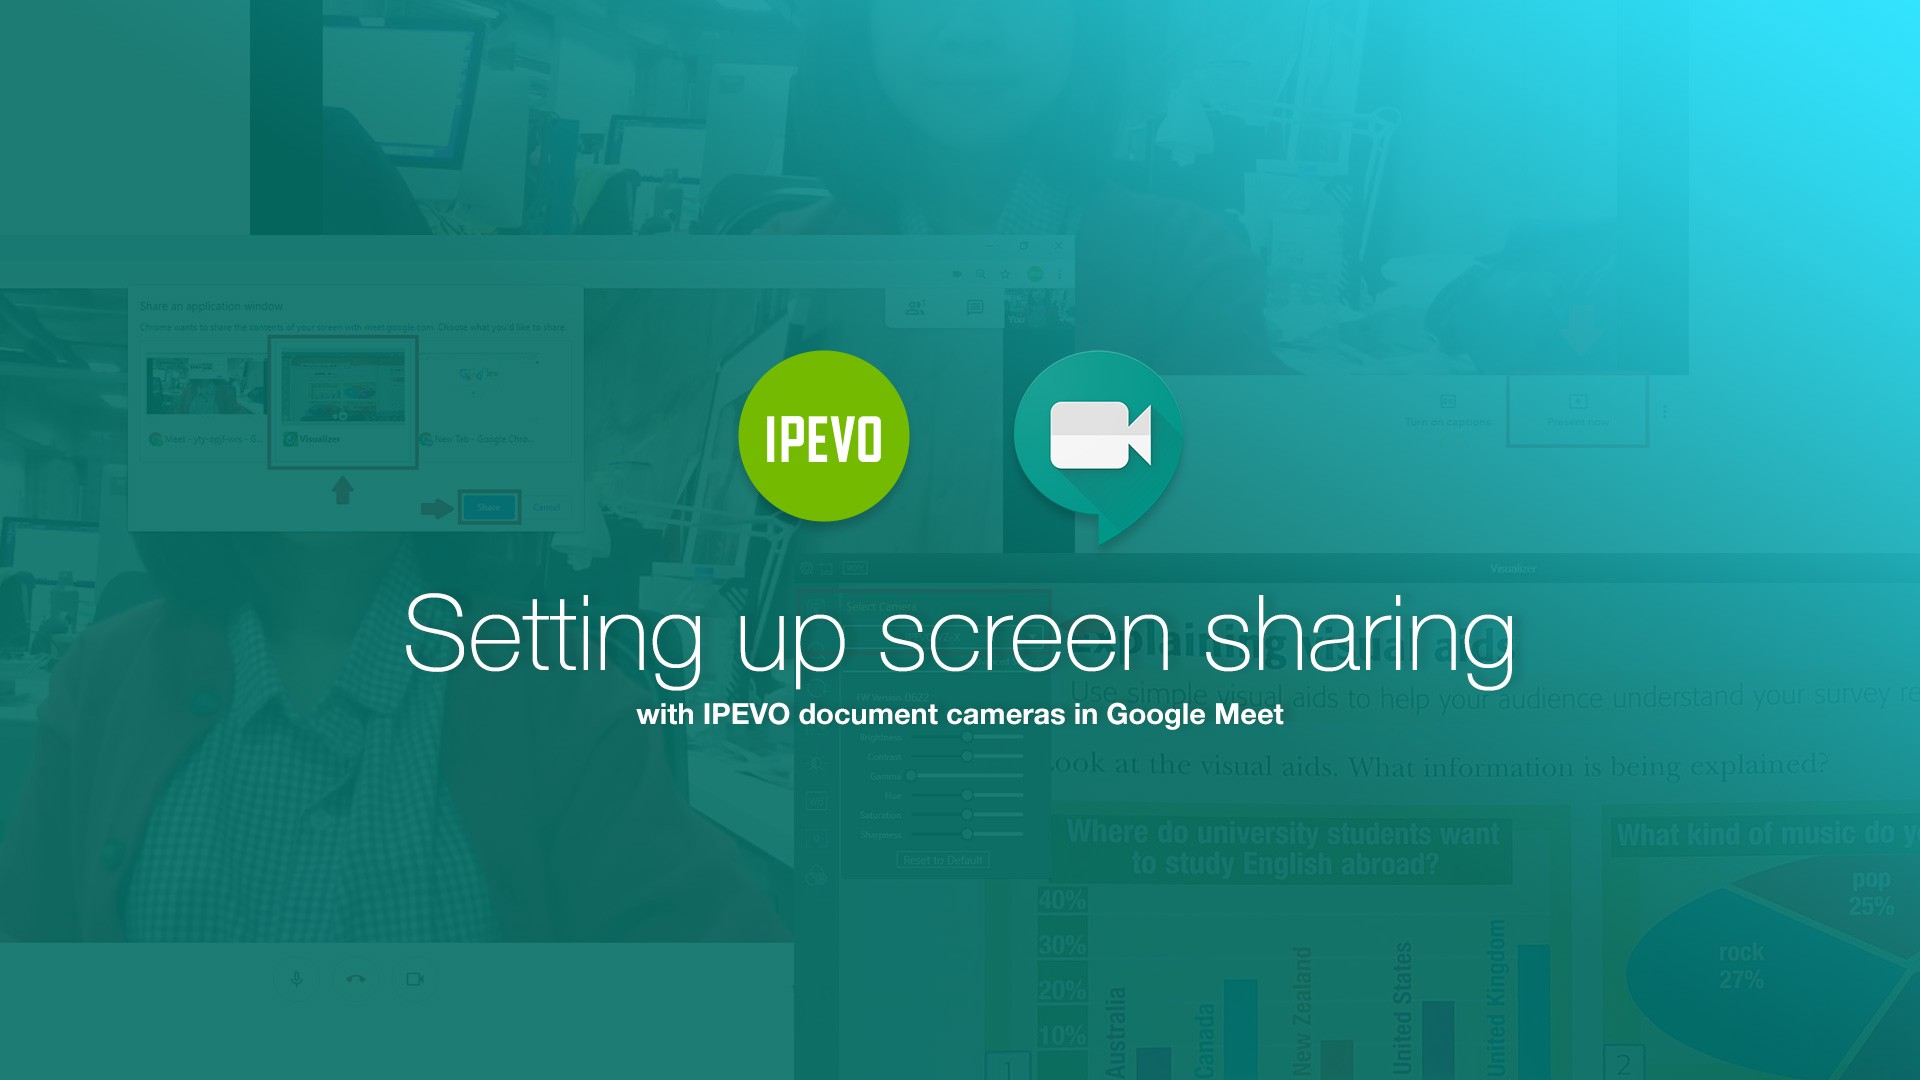 Setting up screen sharing with IPEVO document cameras in Google Meet